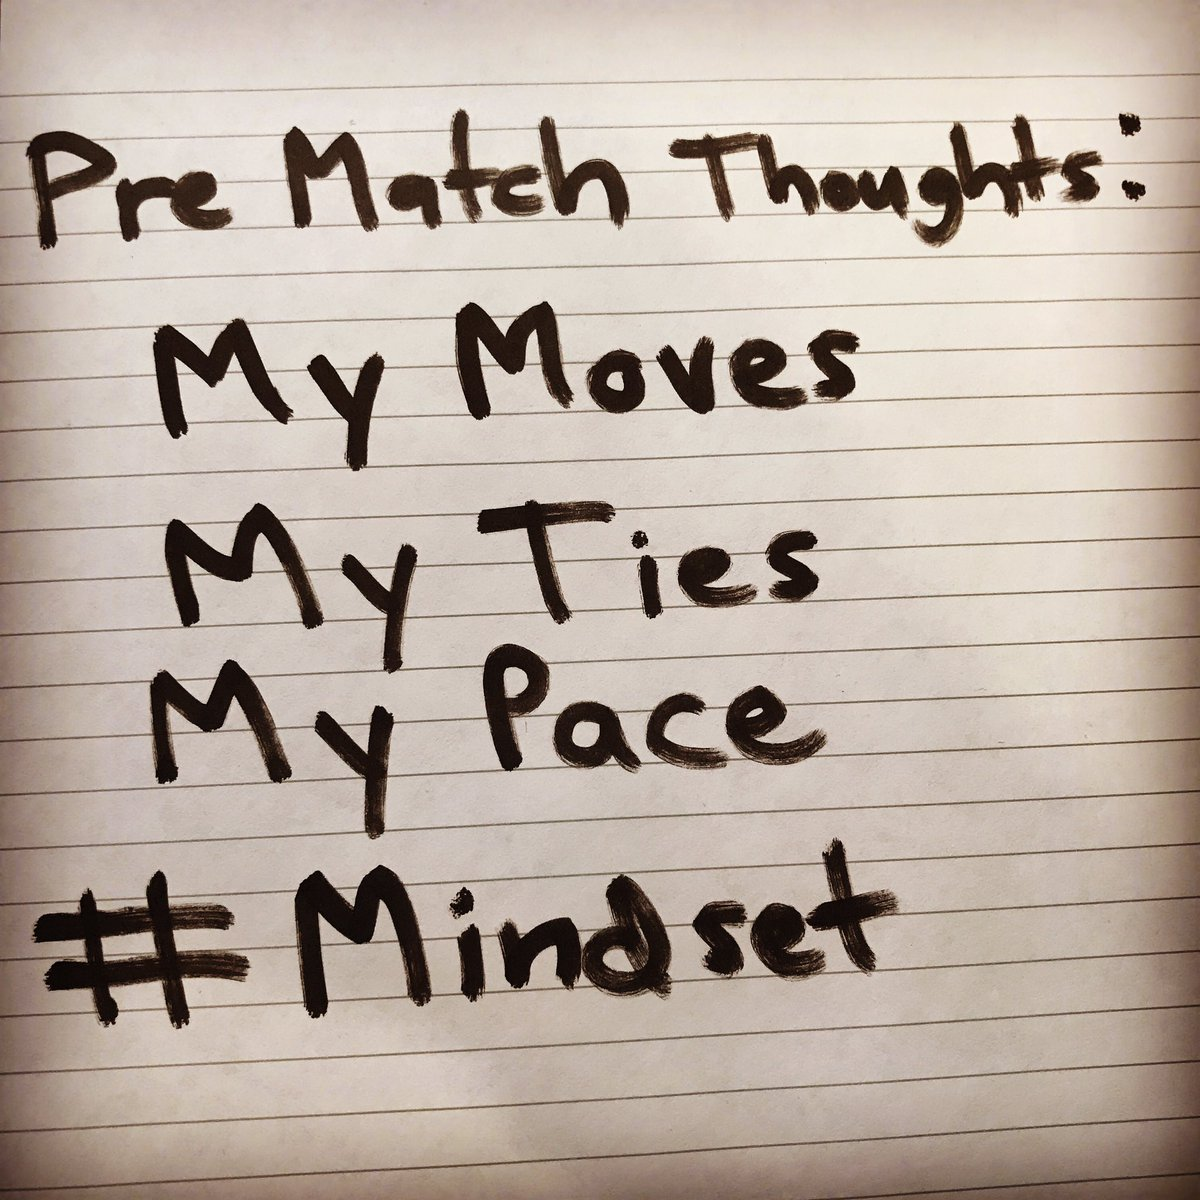 What are you thinking before your matches when you wrestle best? #Mindset